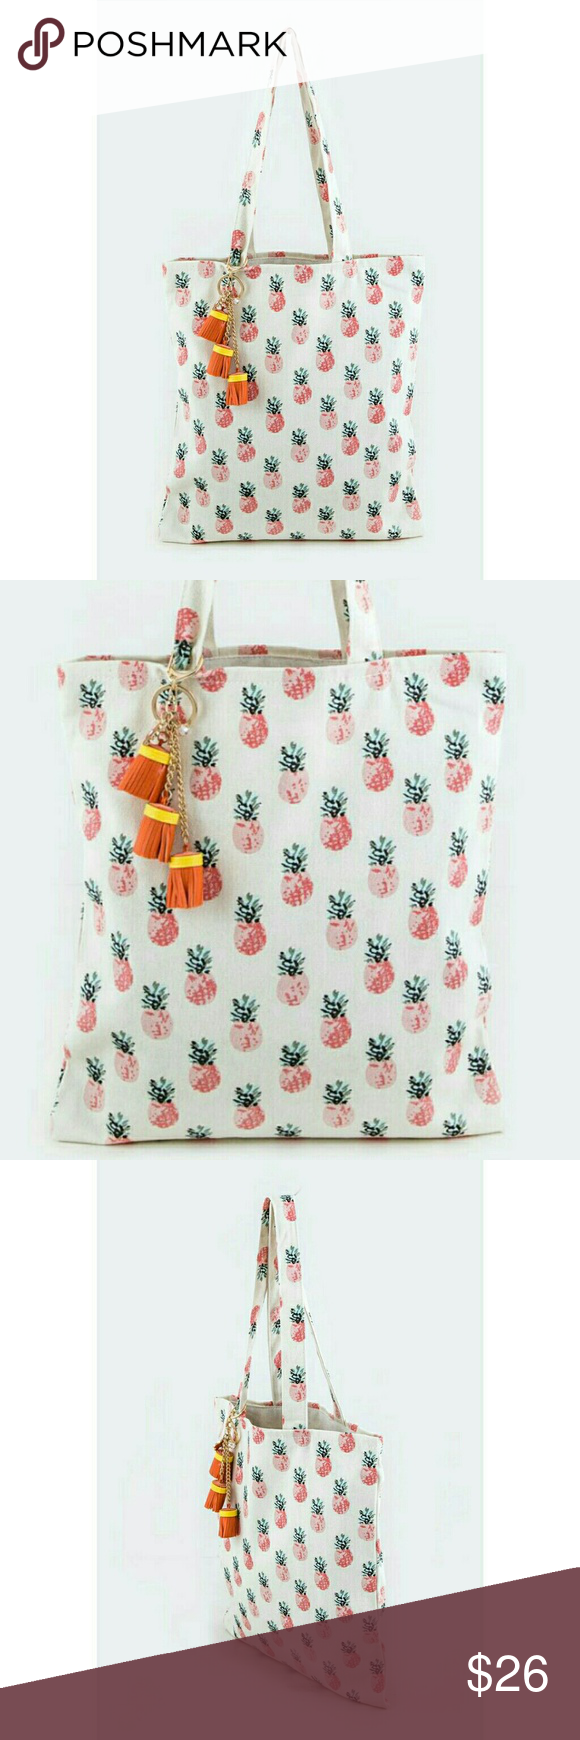 Pineapple tote handbag w/ tassel keychain NWT Fun and trendy pineapple theme tote bag with a cute tassel chain chain. Great for daily use, travel, beach, book bag & more. Soft canvas. 15x13x1. Brand new with tag. Jill Marie Boutique Bags Totes